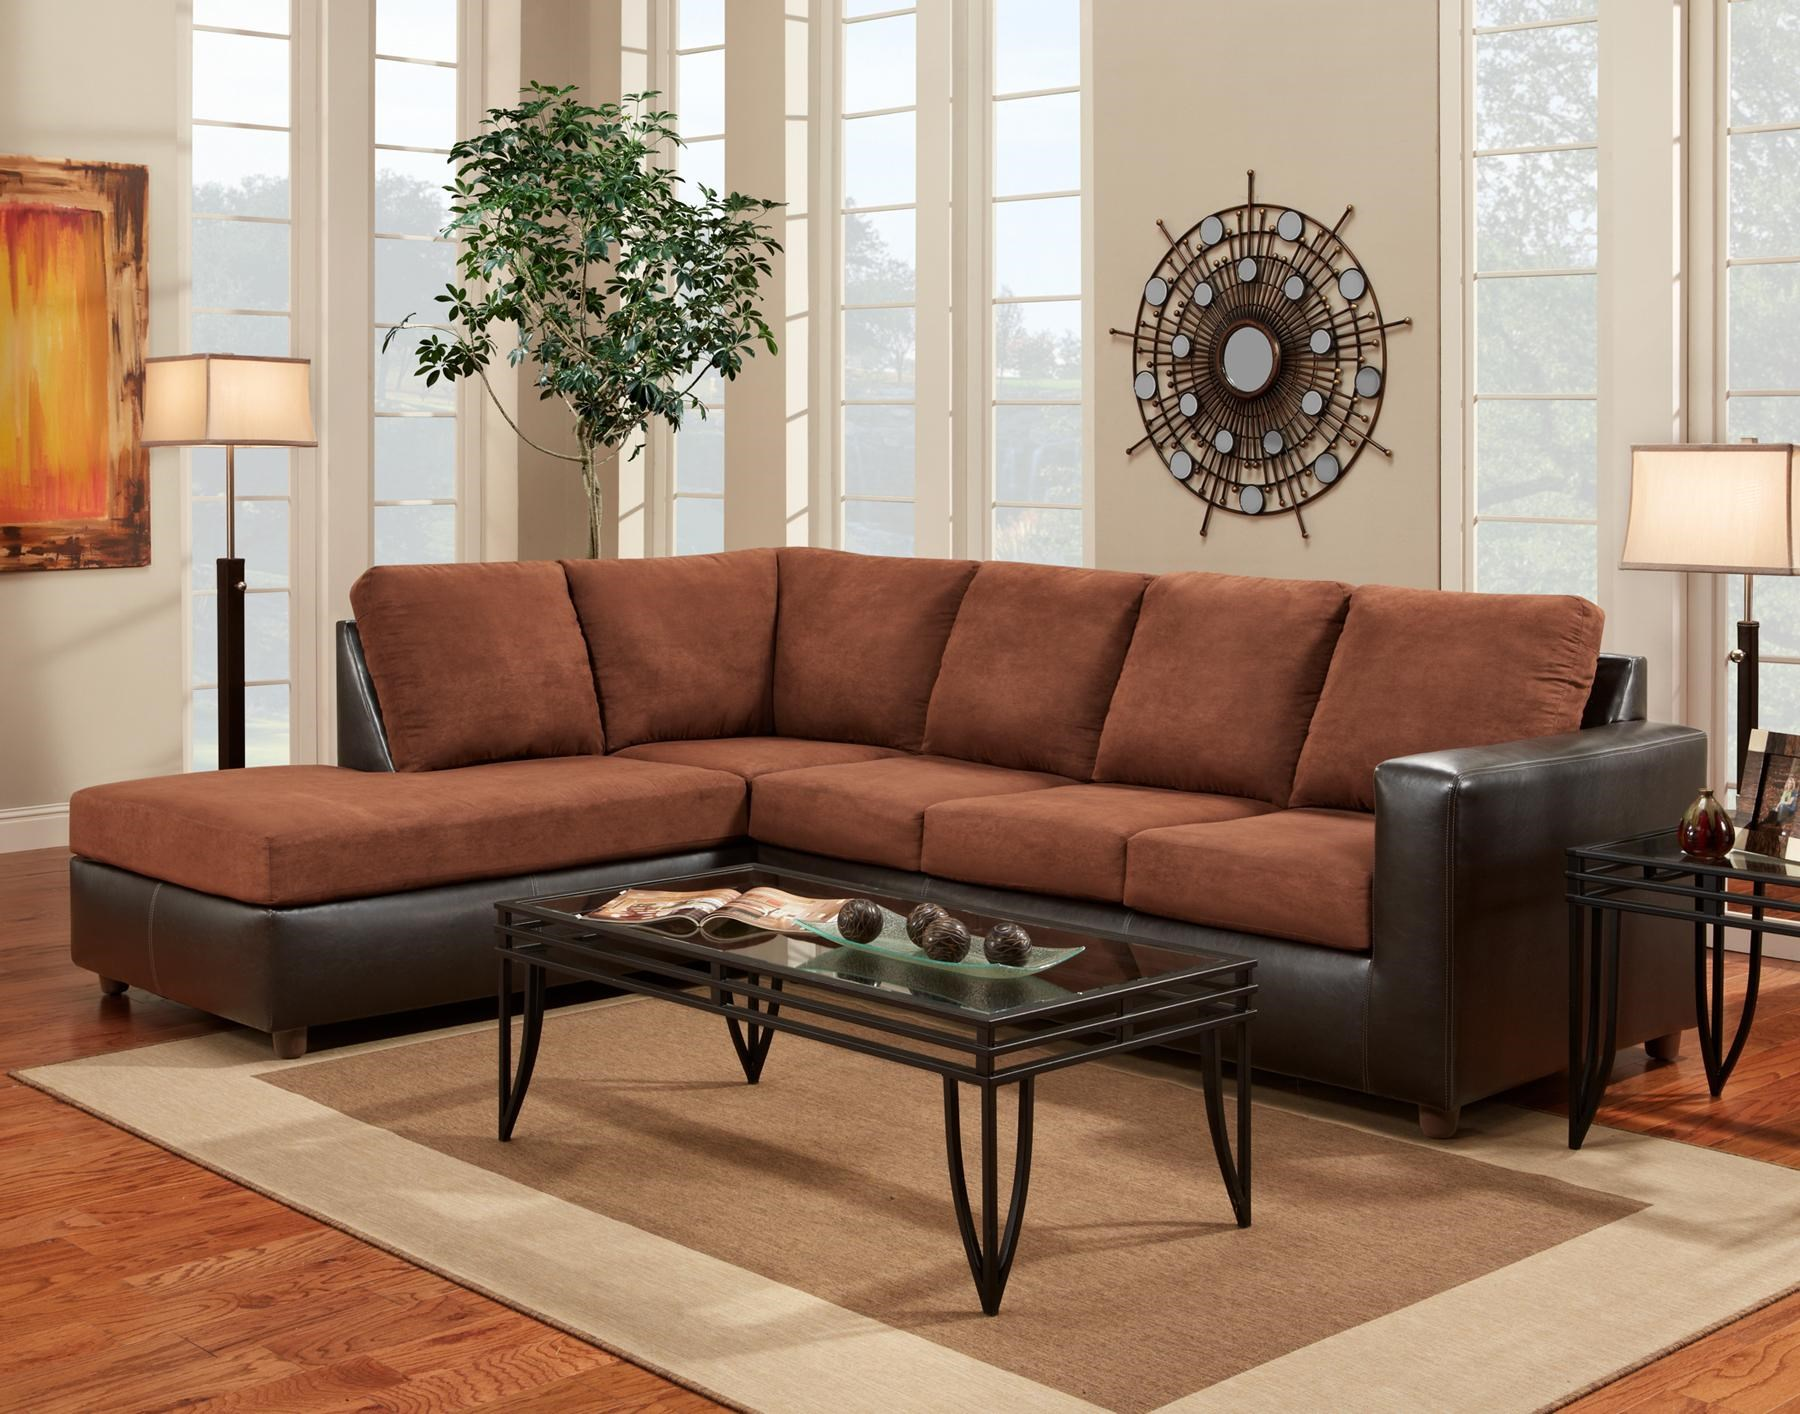 Affordable Furniture 3650 Sofa Sectional   Royal Furniture   Sofa     Affordable Furniture 3650 Sofa Sectional